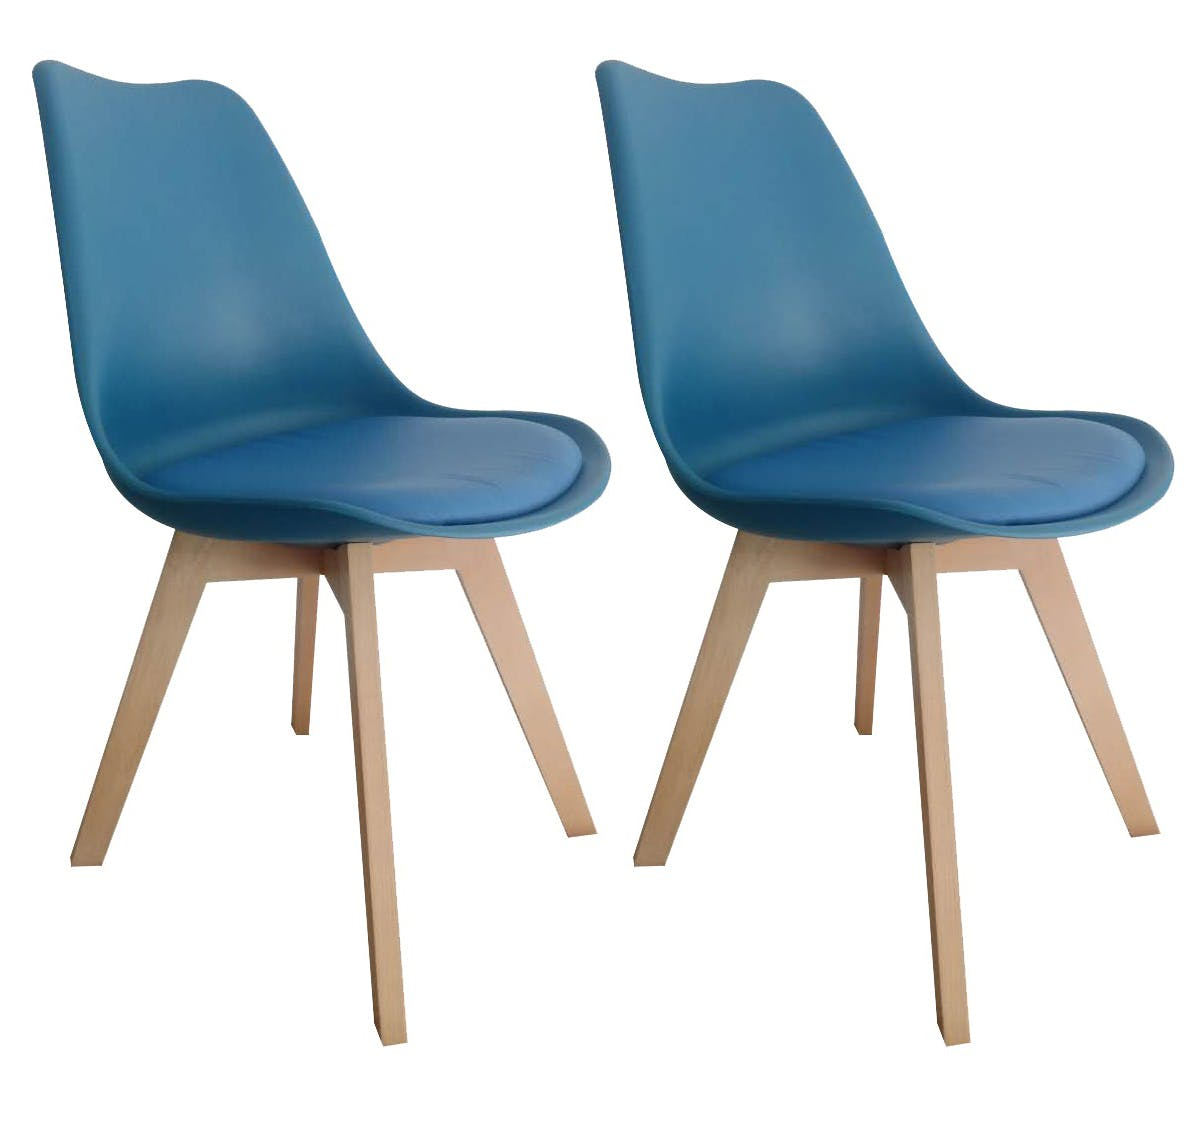 Chaise scandinave bleue TONY2 (lot de 2)